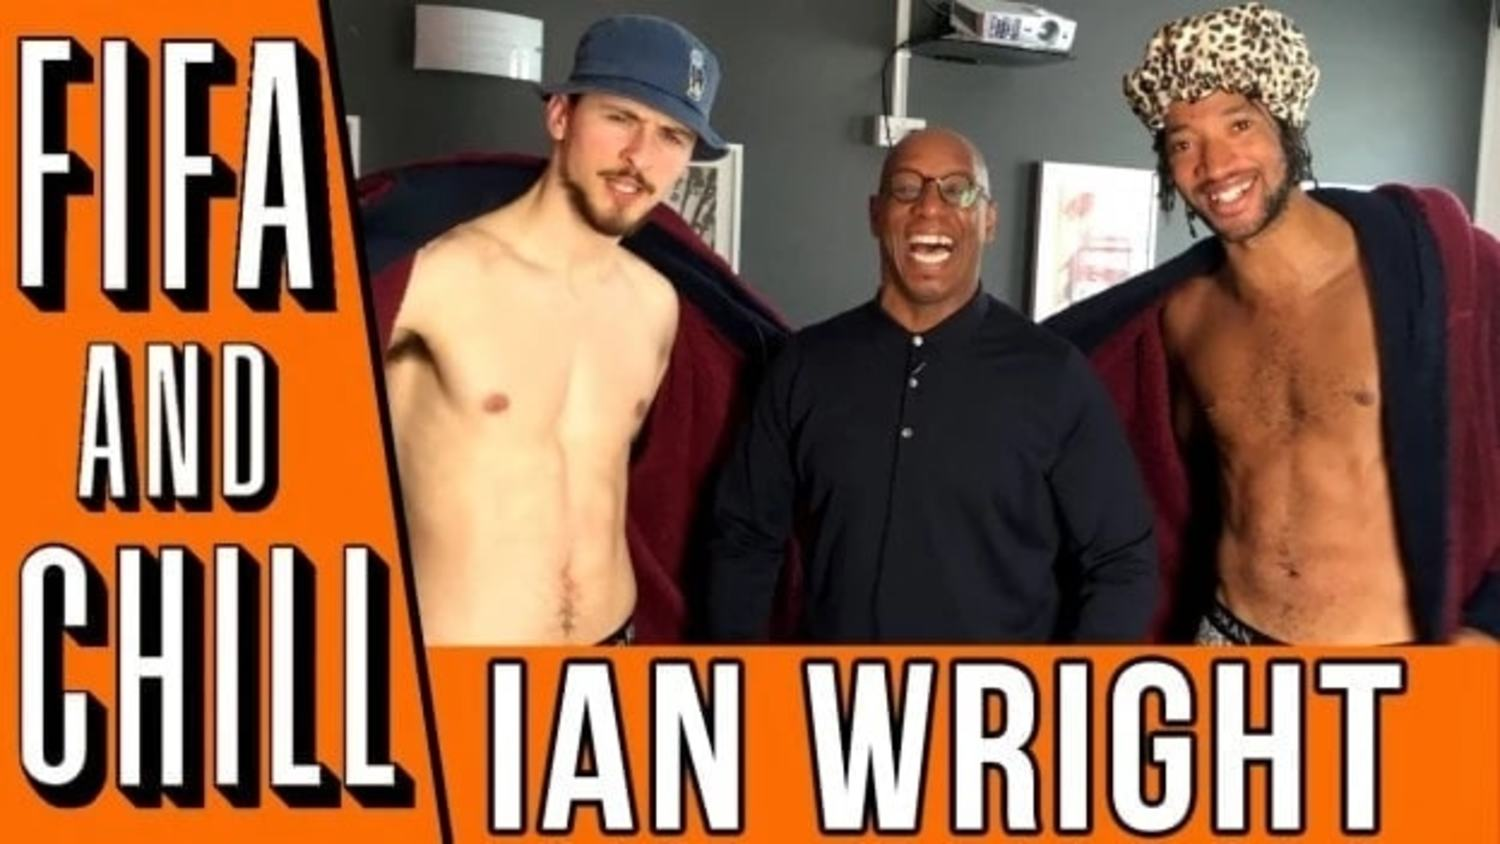 FIFA and Chill with Ian Wright: On England, Wilshere & more!